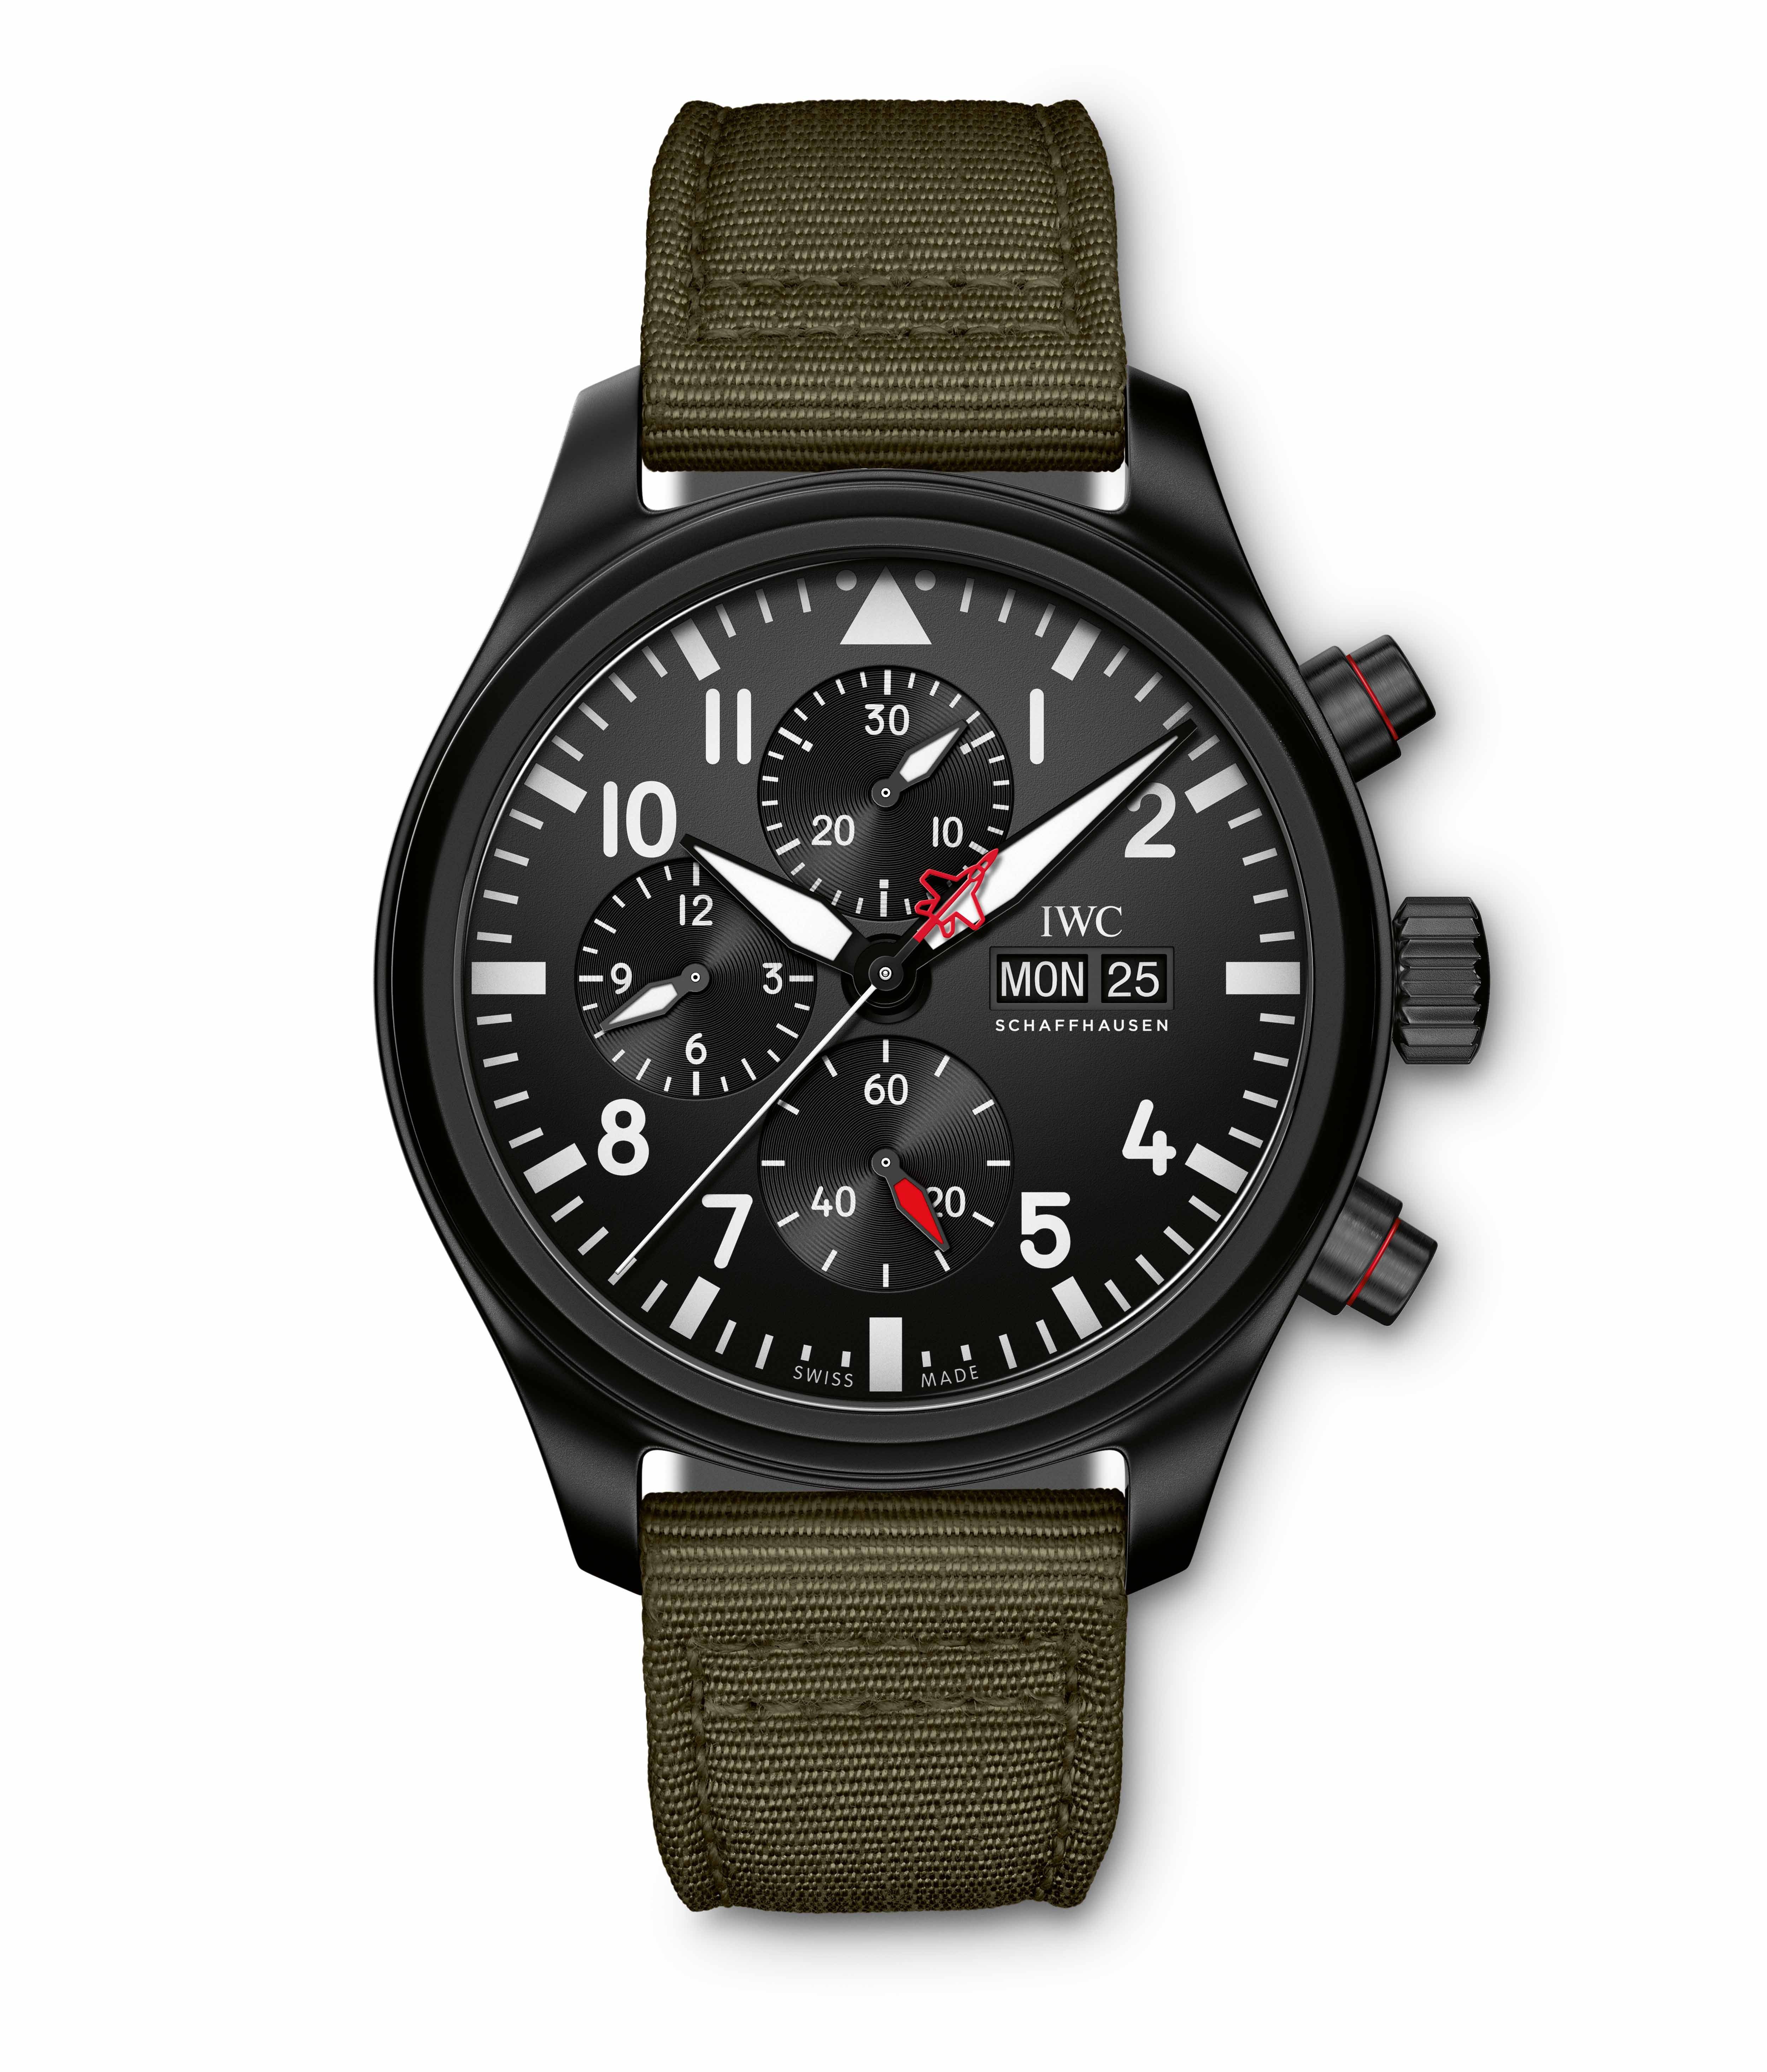 IWC Top Gun Edition Chronograph SFTI